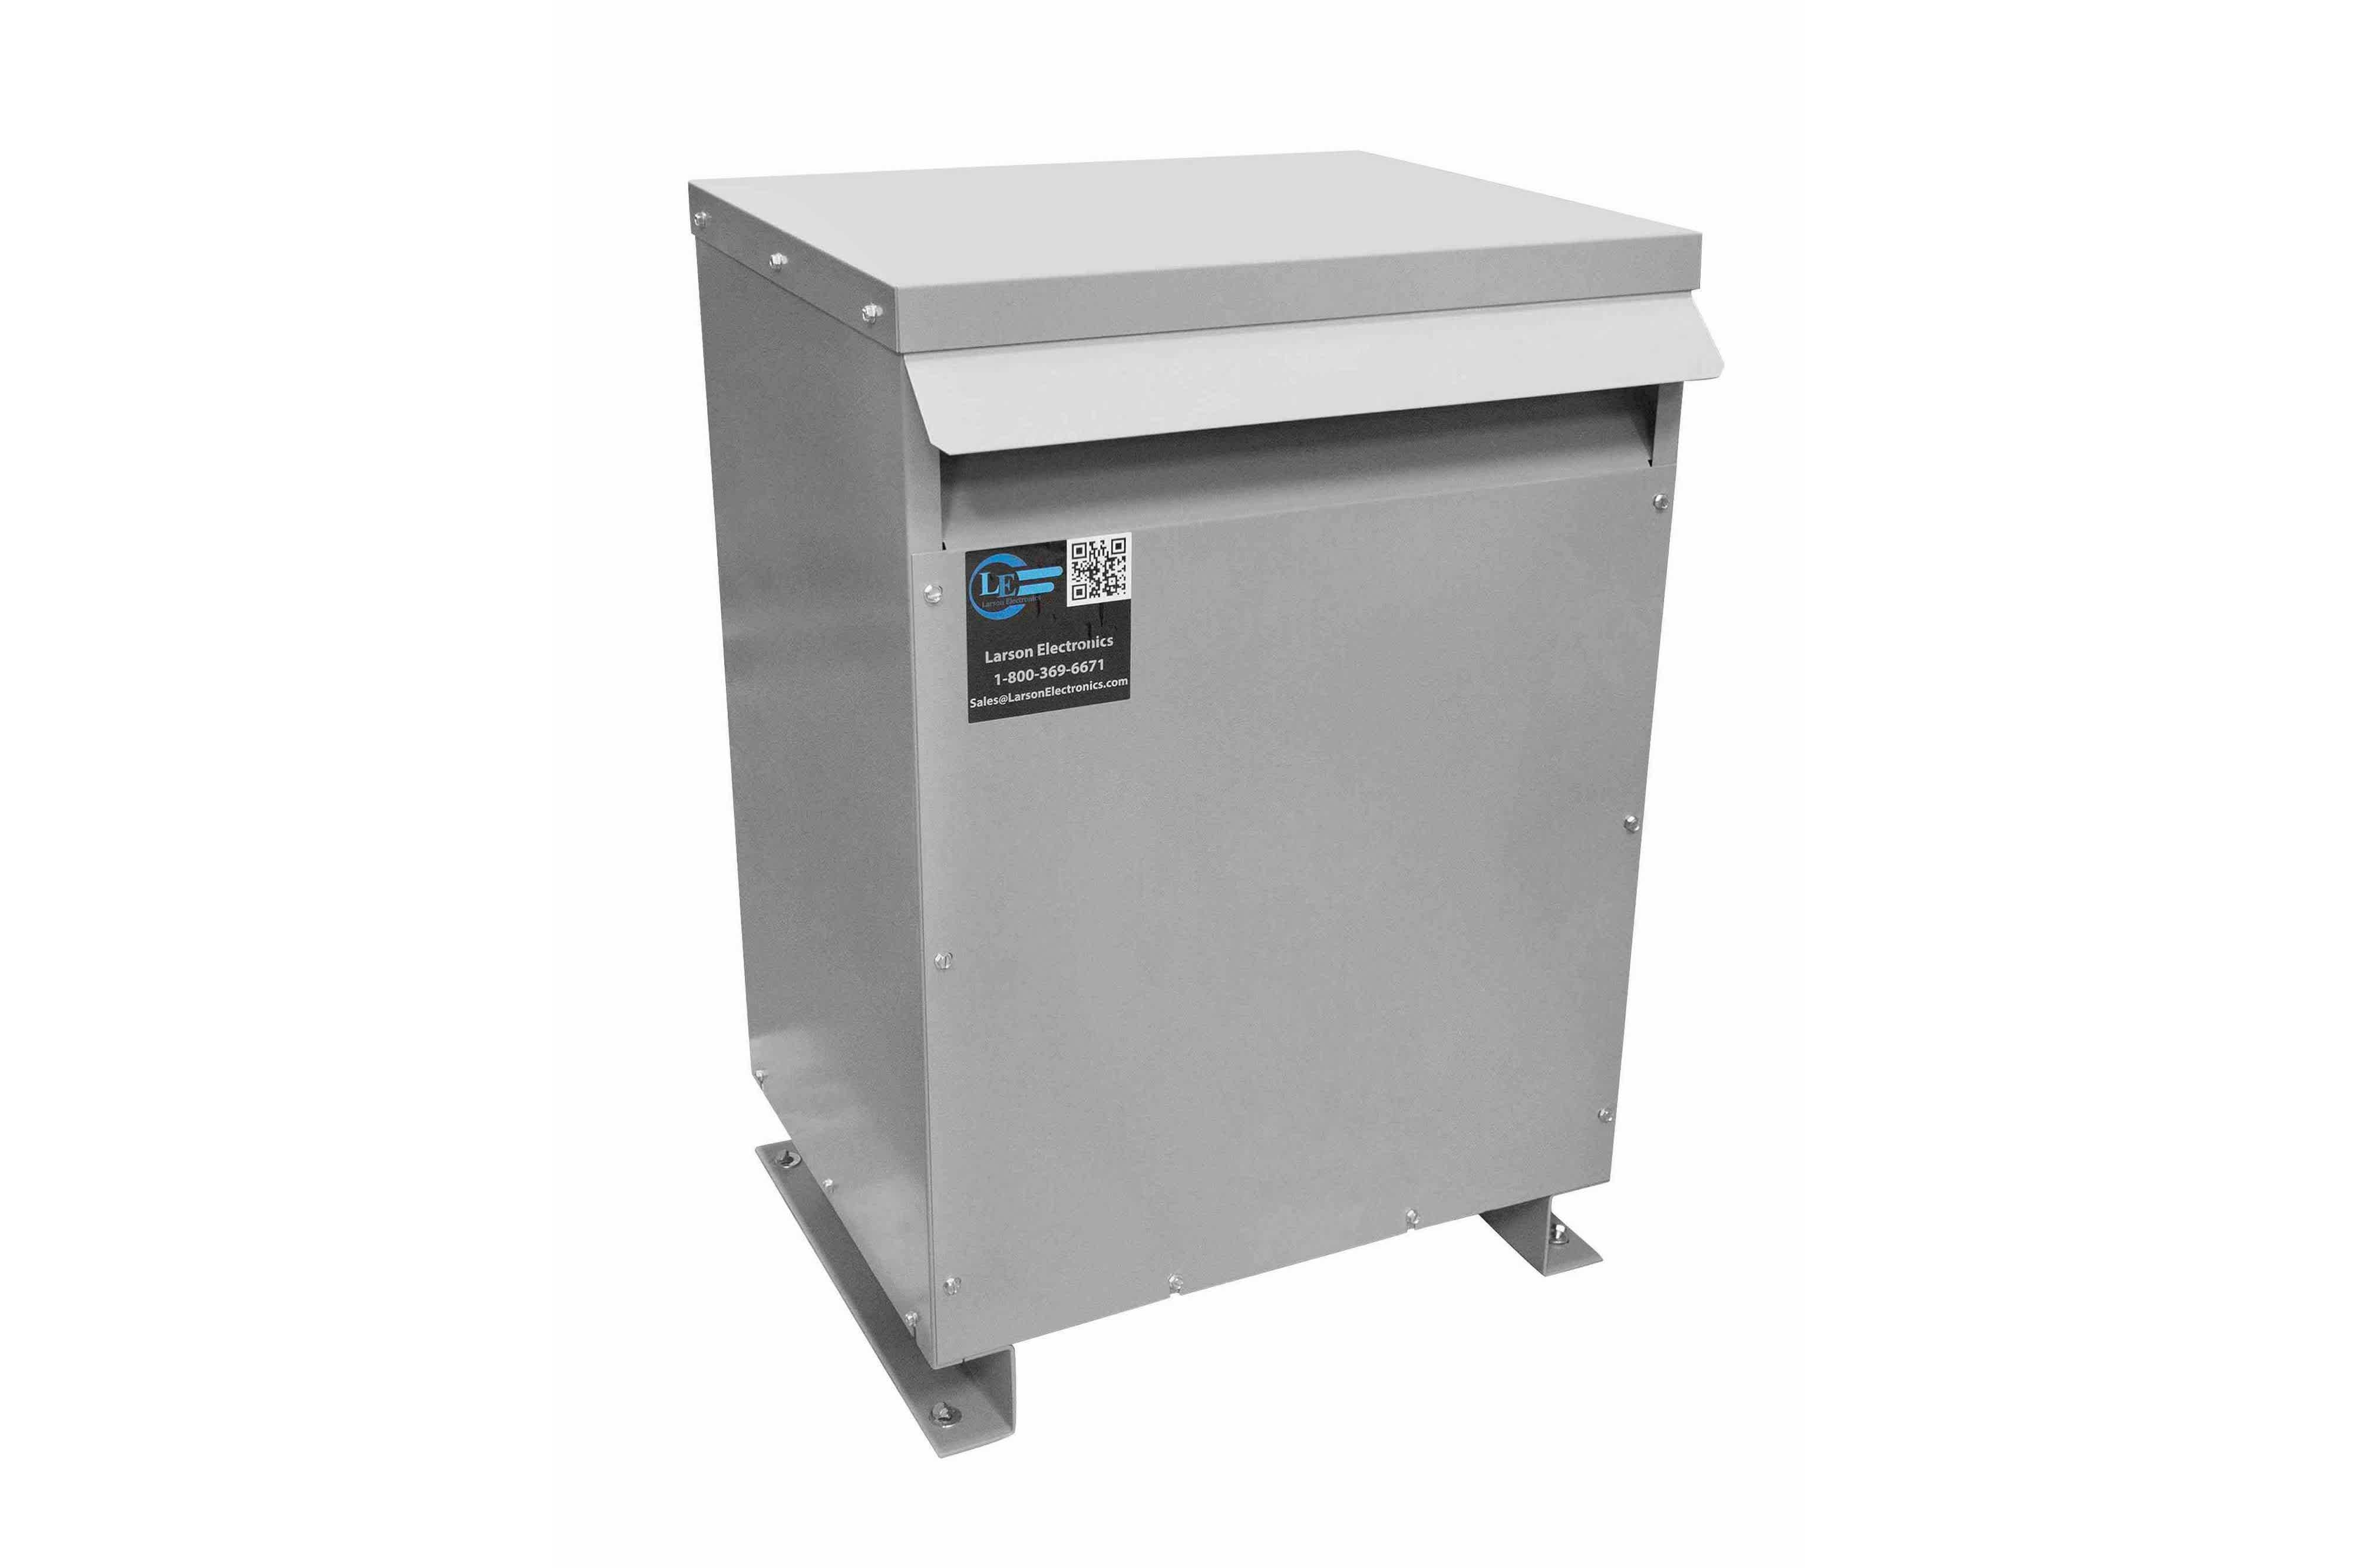 37.5 kVA 3PH Isolation Transformer, 240V Delta Primary, 208V Delta Secondary, N3R, Ventilated, 60 Hz